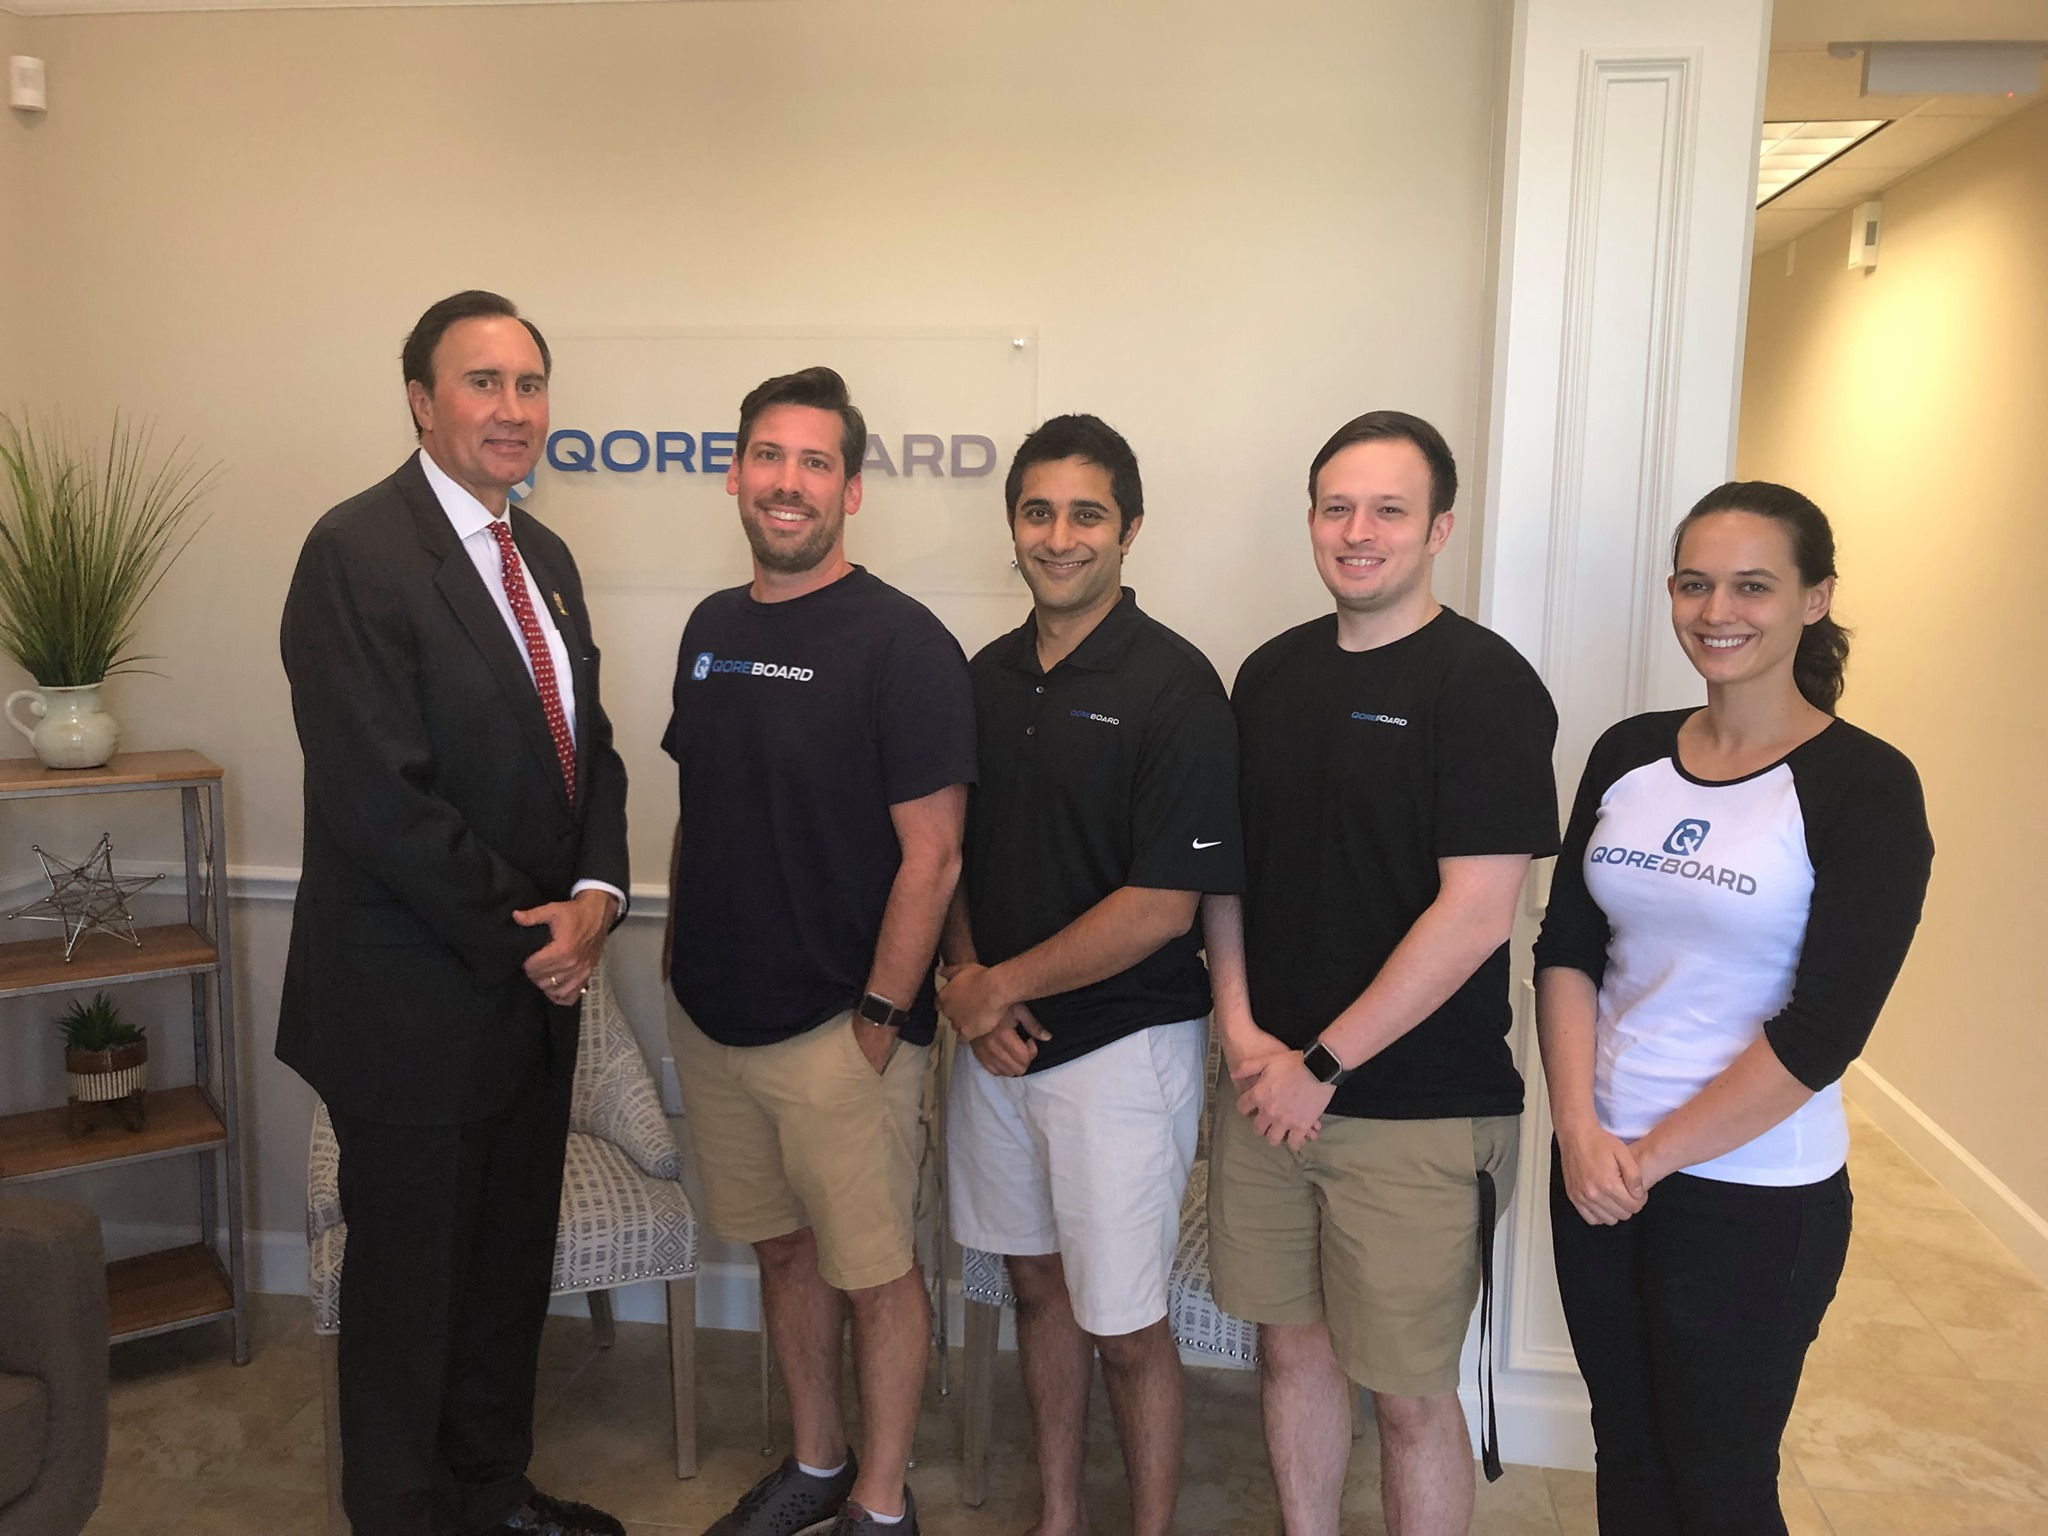 Rep. Pete Olson (R-Texas) and the team from QOREBOARD celebrating Congressional Startup Day.